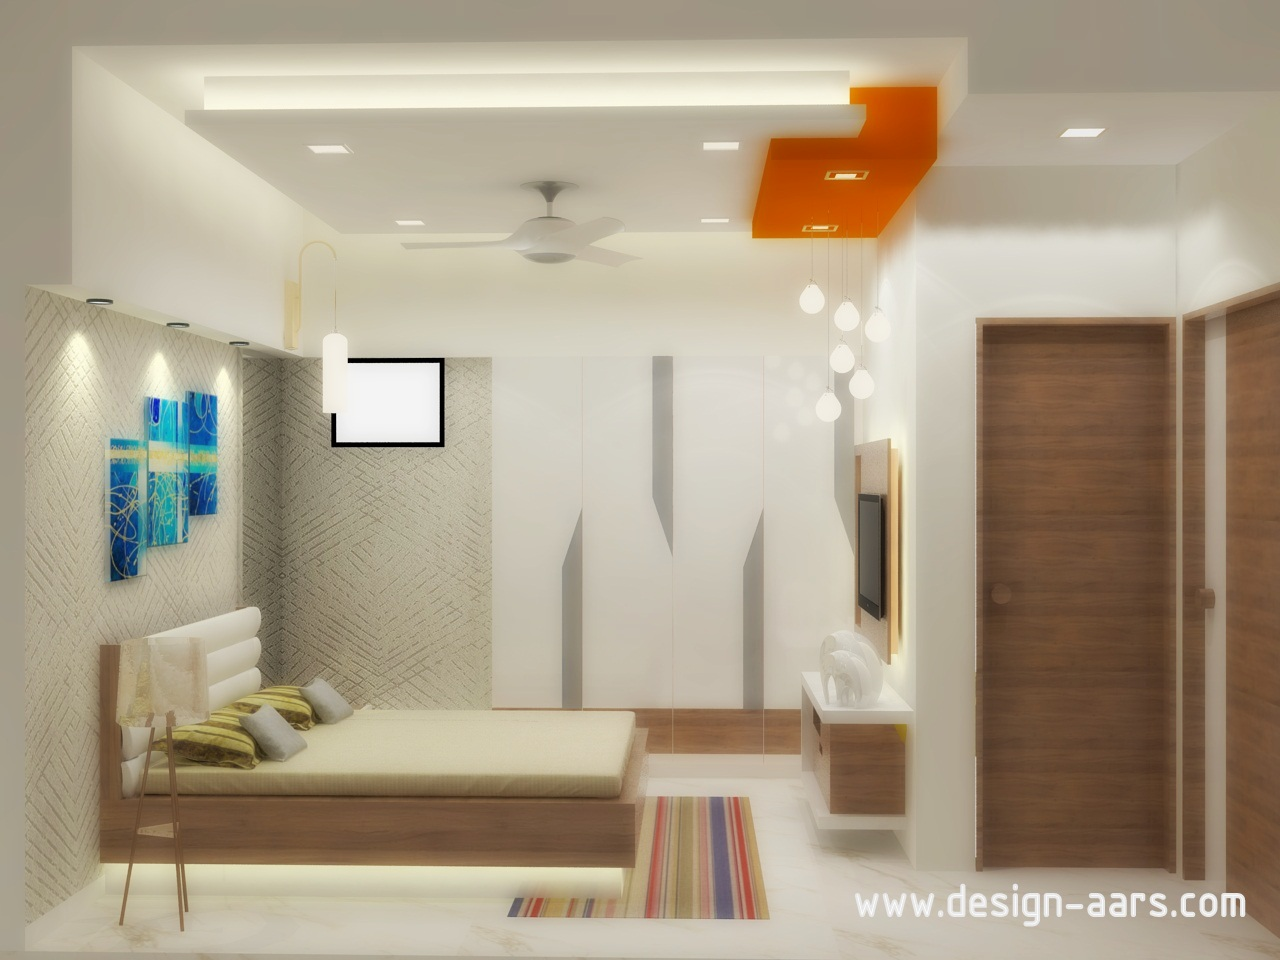 Mr. Narayan Patak's Flat Interior Design at Global City, Virar (W)